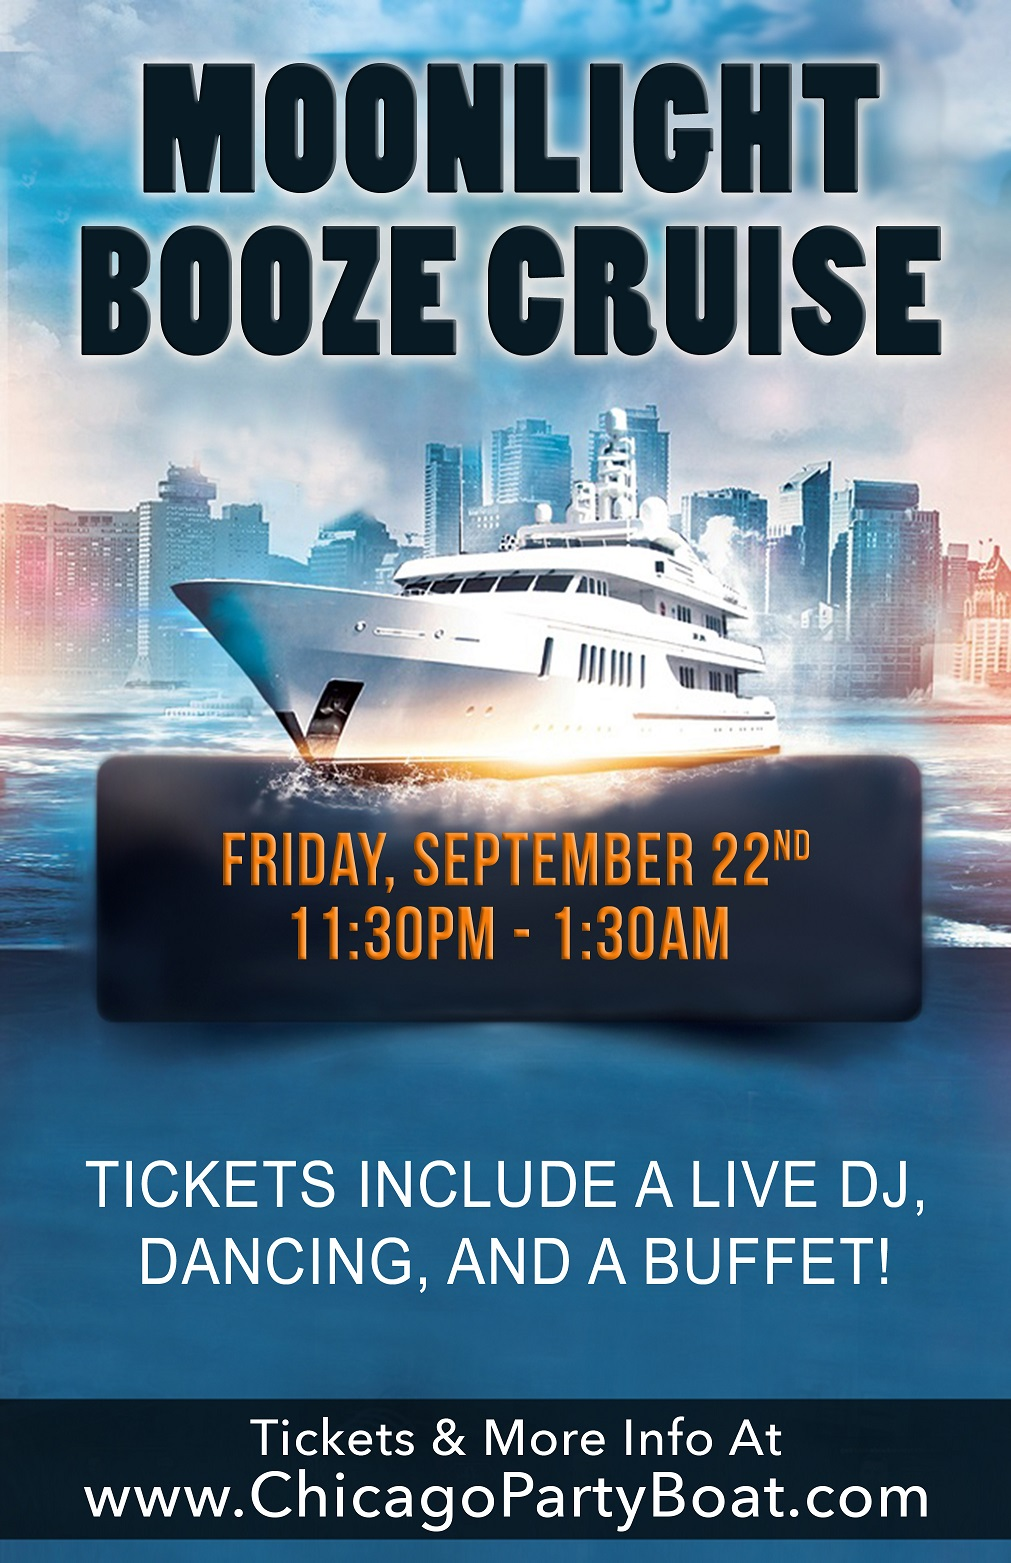 Moonlight Booze Cruise on Lake Michigan! Tickets include a buffet, Live DJ, dancing and the best views of the skyline!